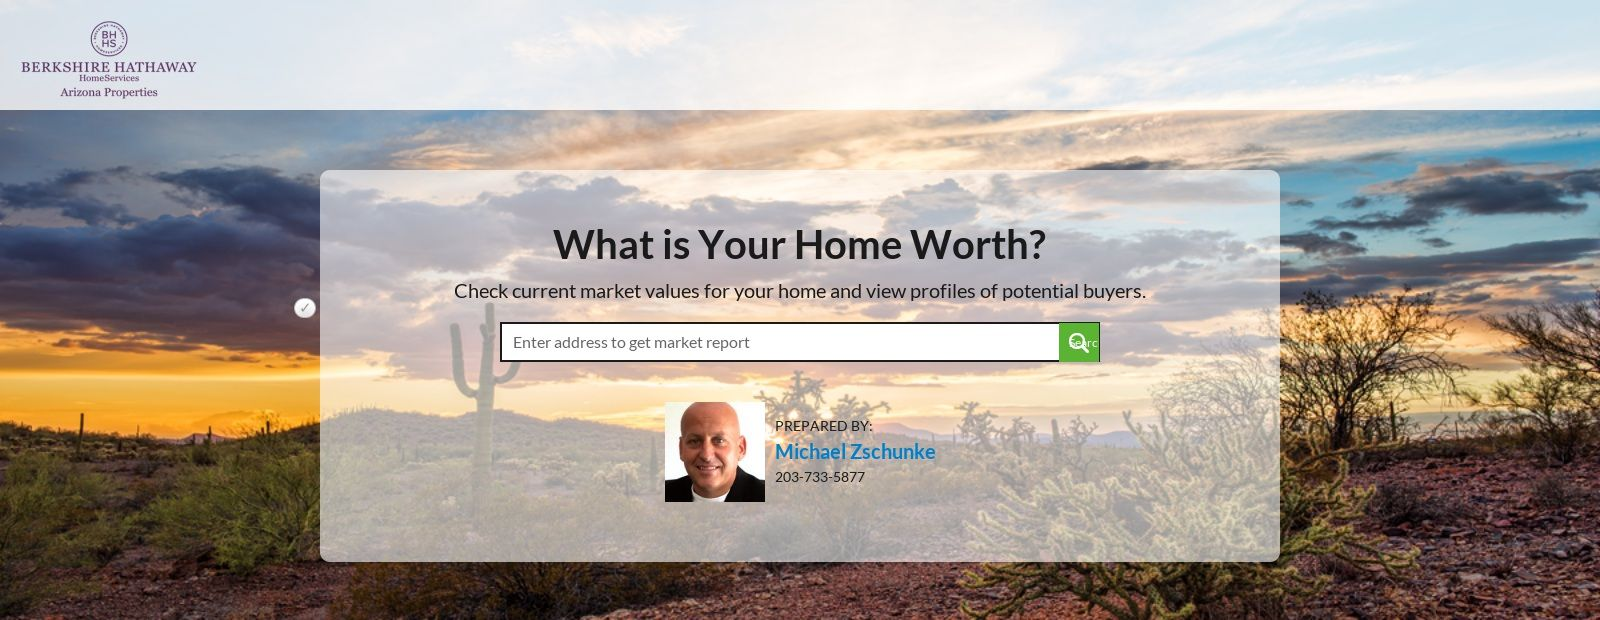 Home Value Estimator by Michael Zschunke Arizona real